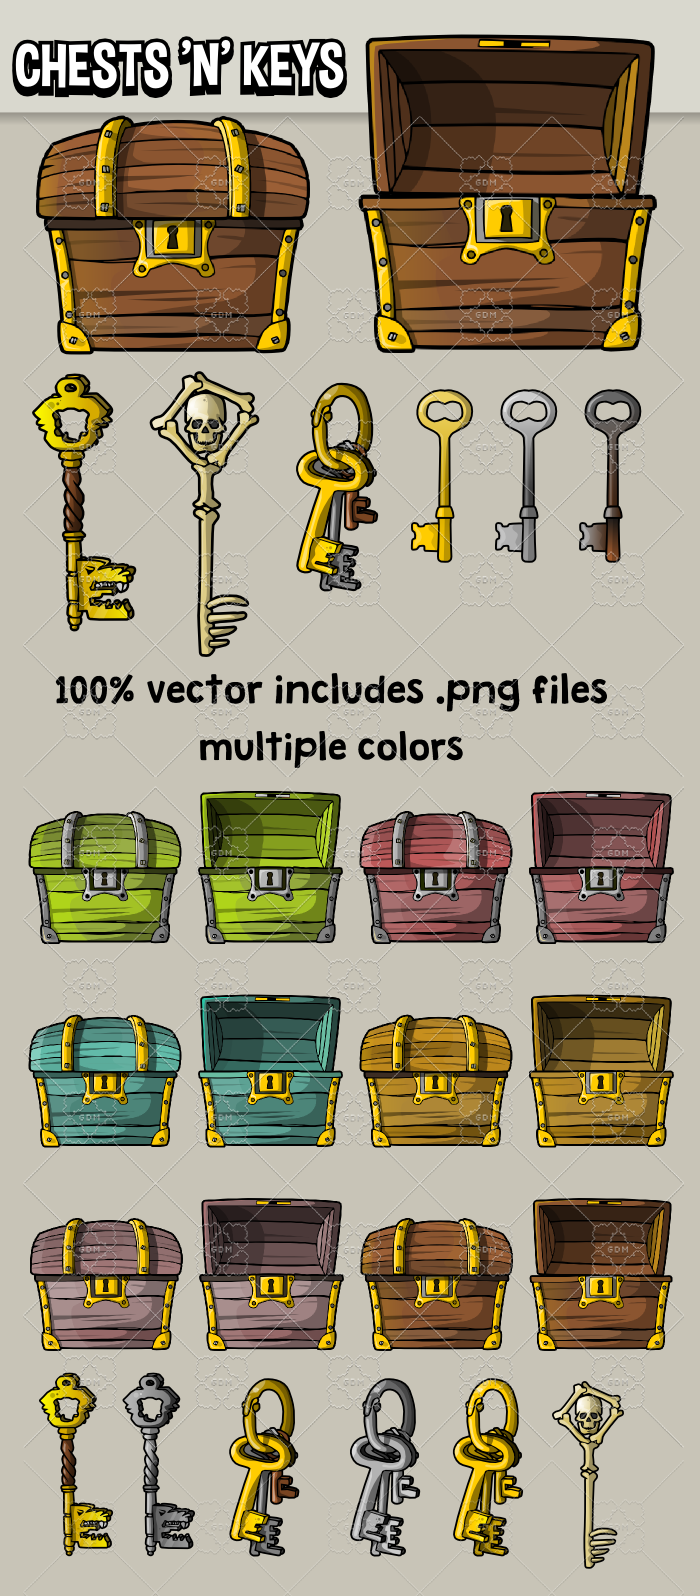 Chests n Keys